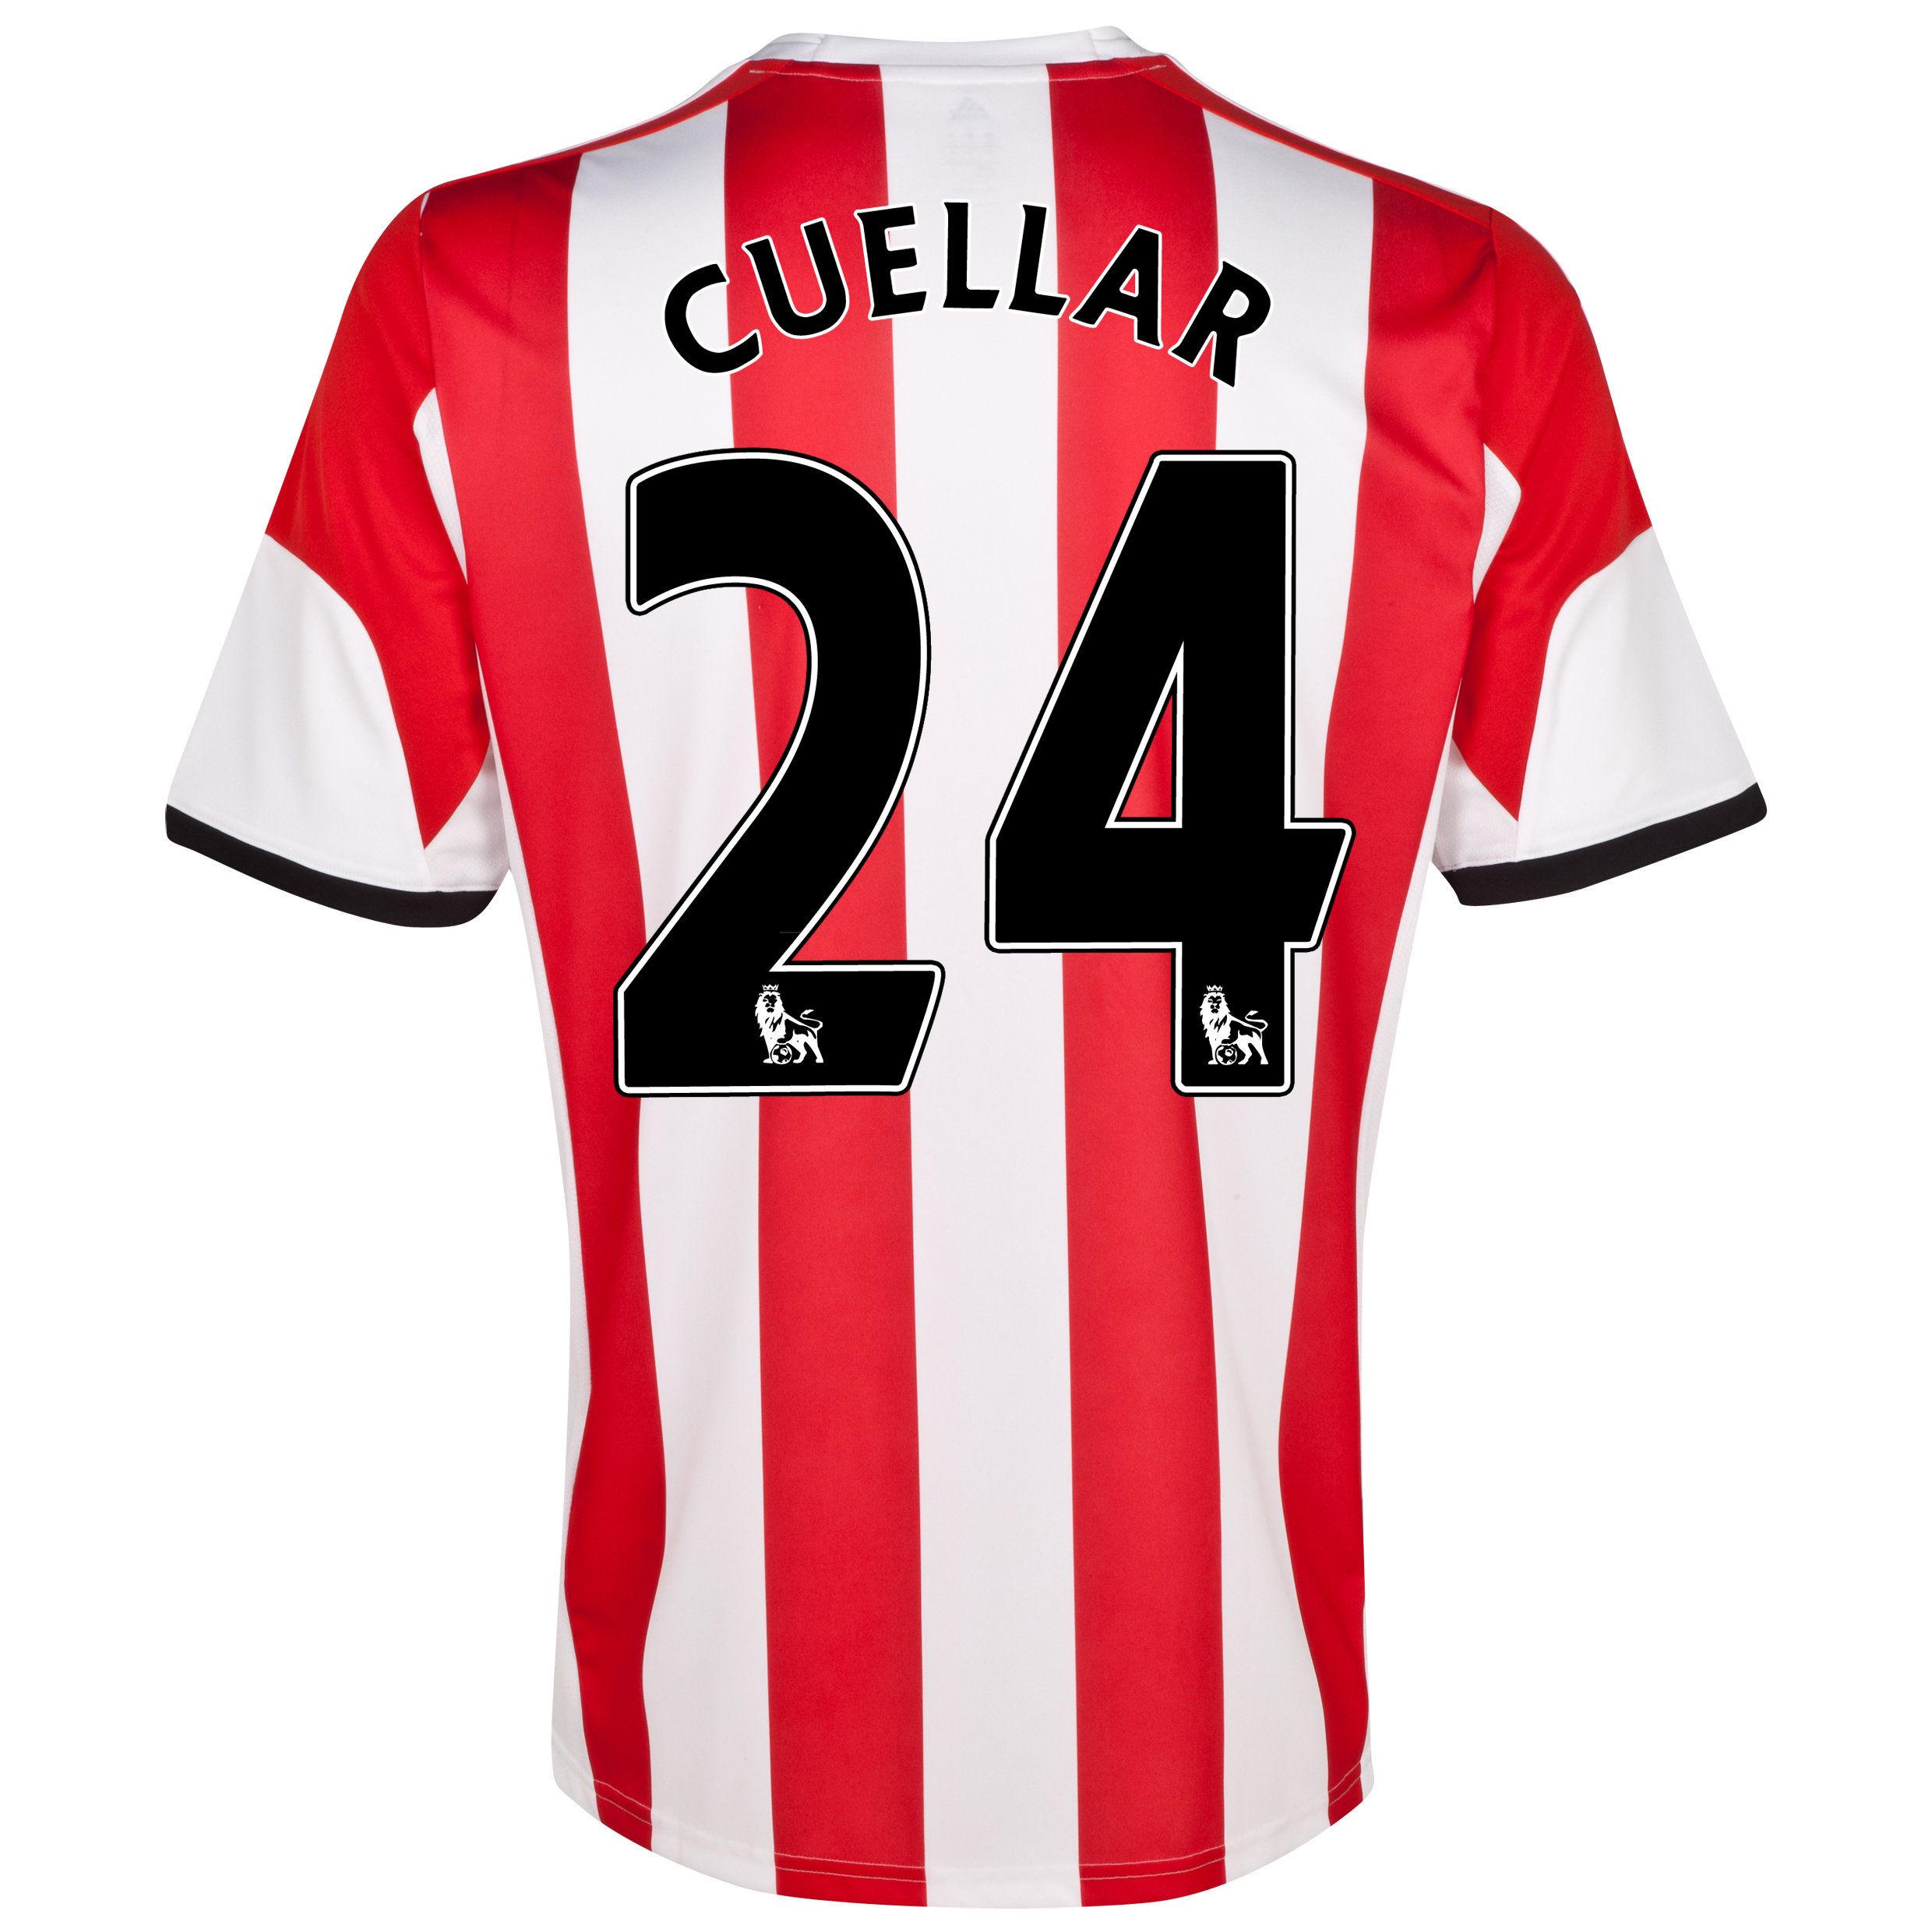 Sunderland Home Shirt 2013/14  with Cuellar 24 printing